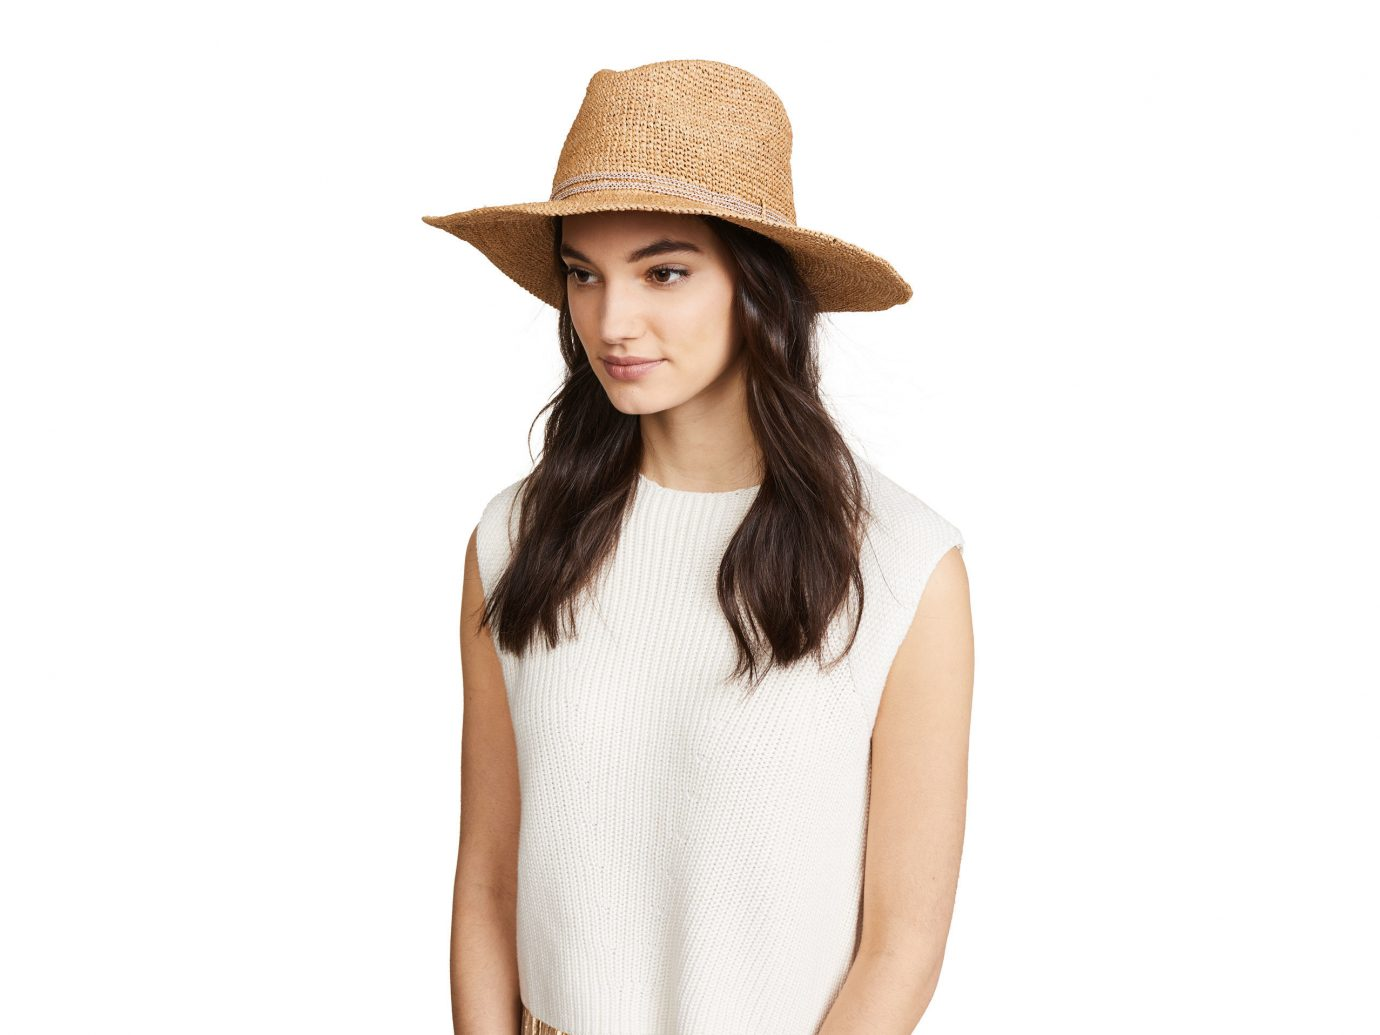 Morocco Packing Tips Style + Design Travel Shop clothing person hat wearing headgear fedora sun hat fashion model neck posing dressed